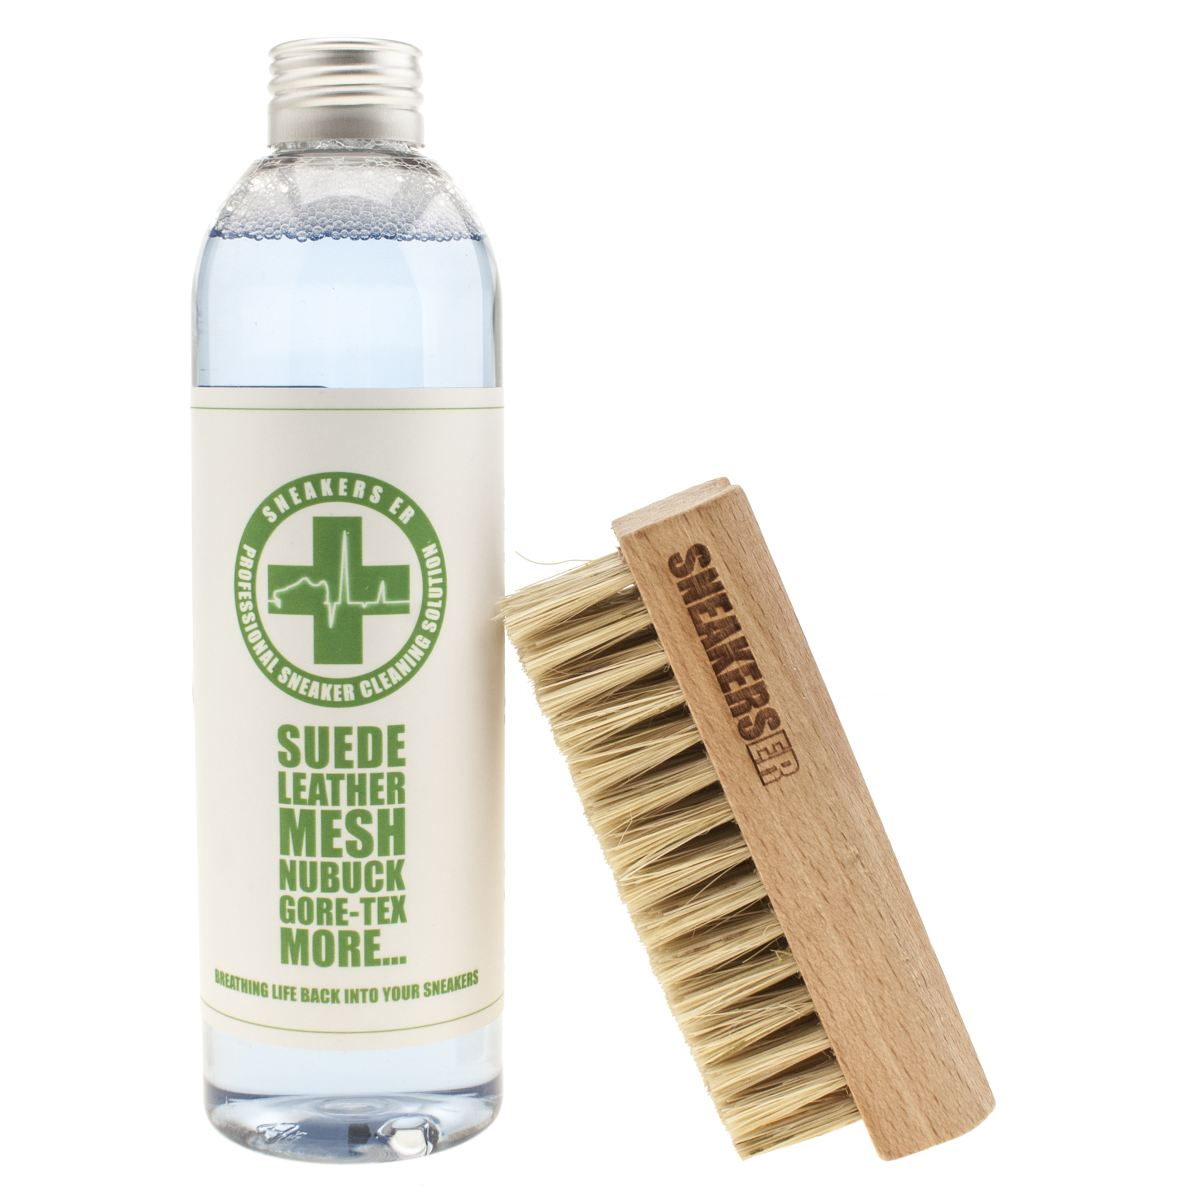 sneakerser Sneakerser Clear Cleaner Kit Shoe Care